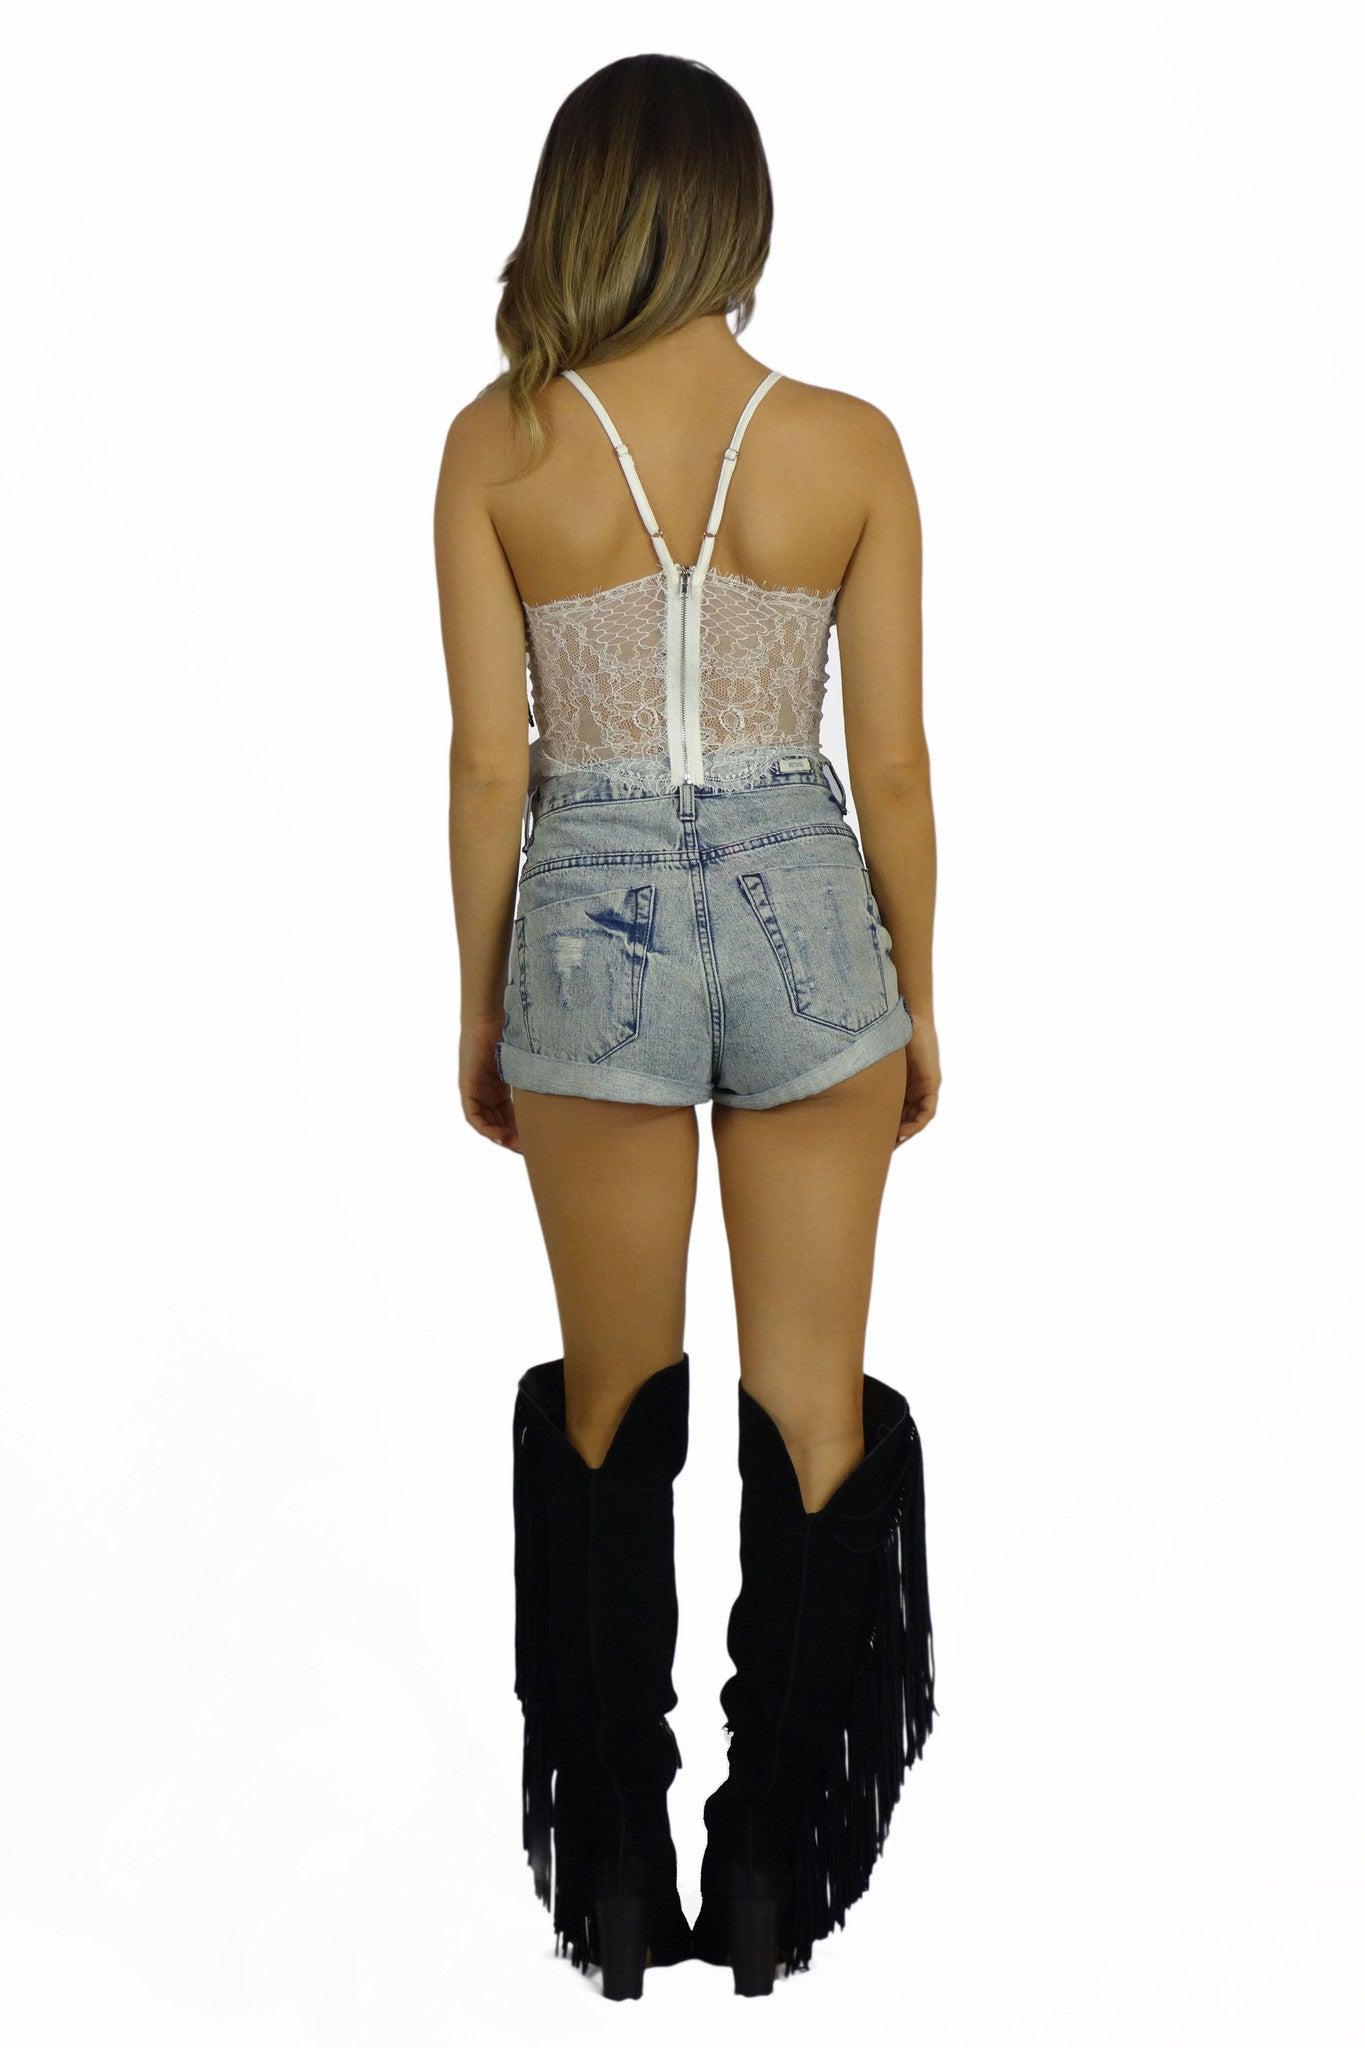 Rehab Crop Top With Lace Back - TOPS - REHAB - Free Vibrationz - 3